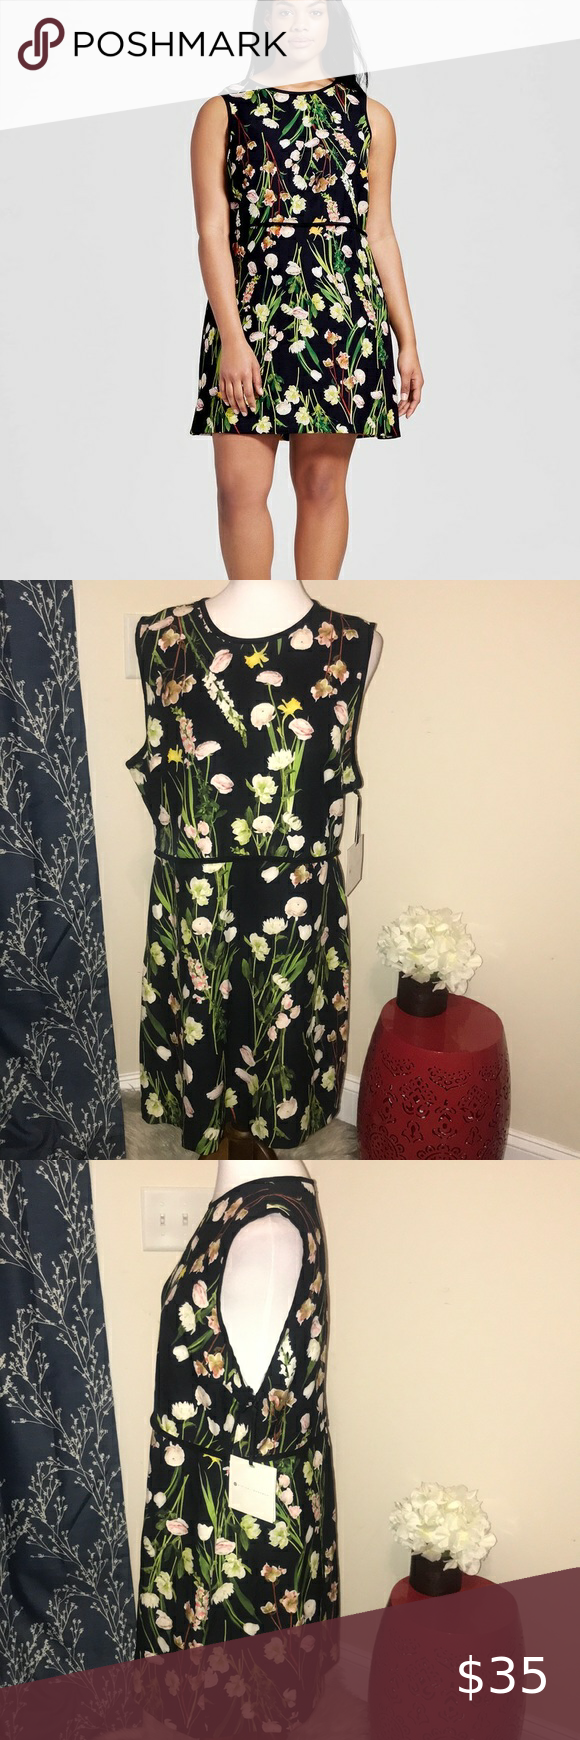 New Victoria Beckham Black English Floral Dress New With Tags Victoria Beckham For Target Plus Black English Flora Floral Dress Clothes Design Target Dresses [ 1740 x 580 Pixel ]